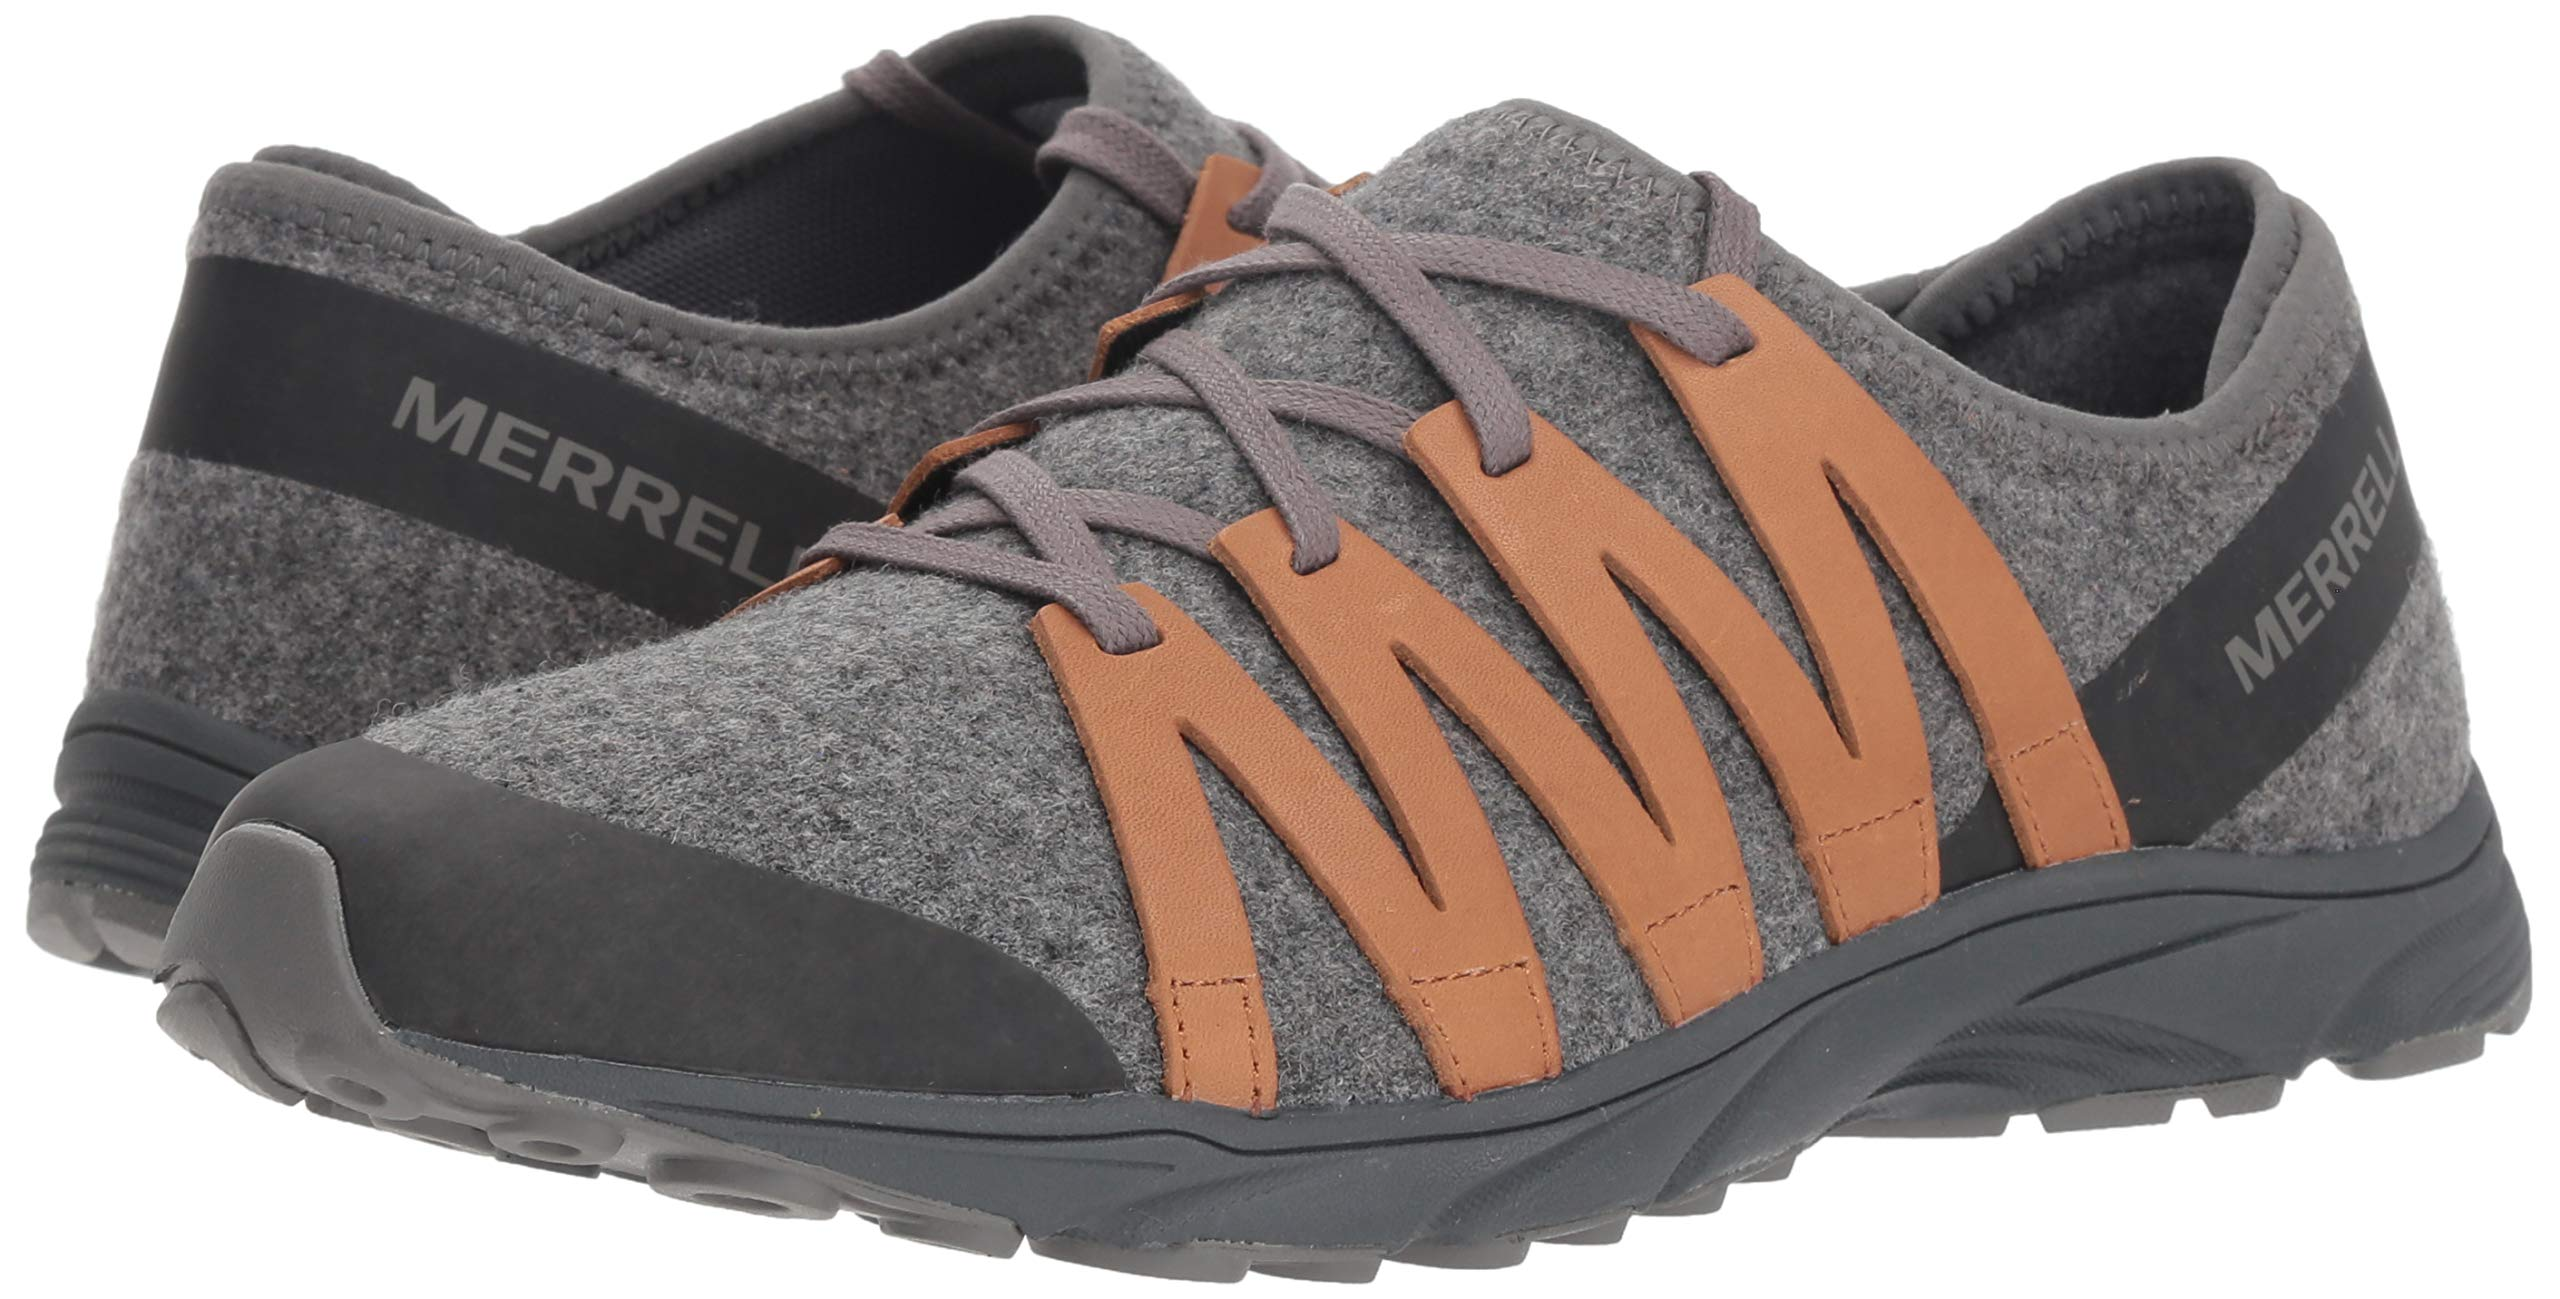 Merrell Women's Riveter Wool Sneaker Charcoal 11 M US by Merrell (Image #6)